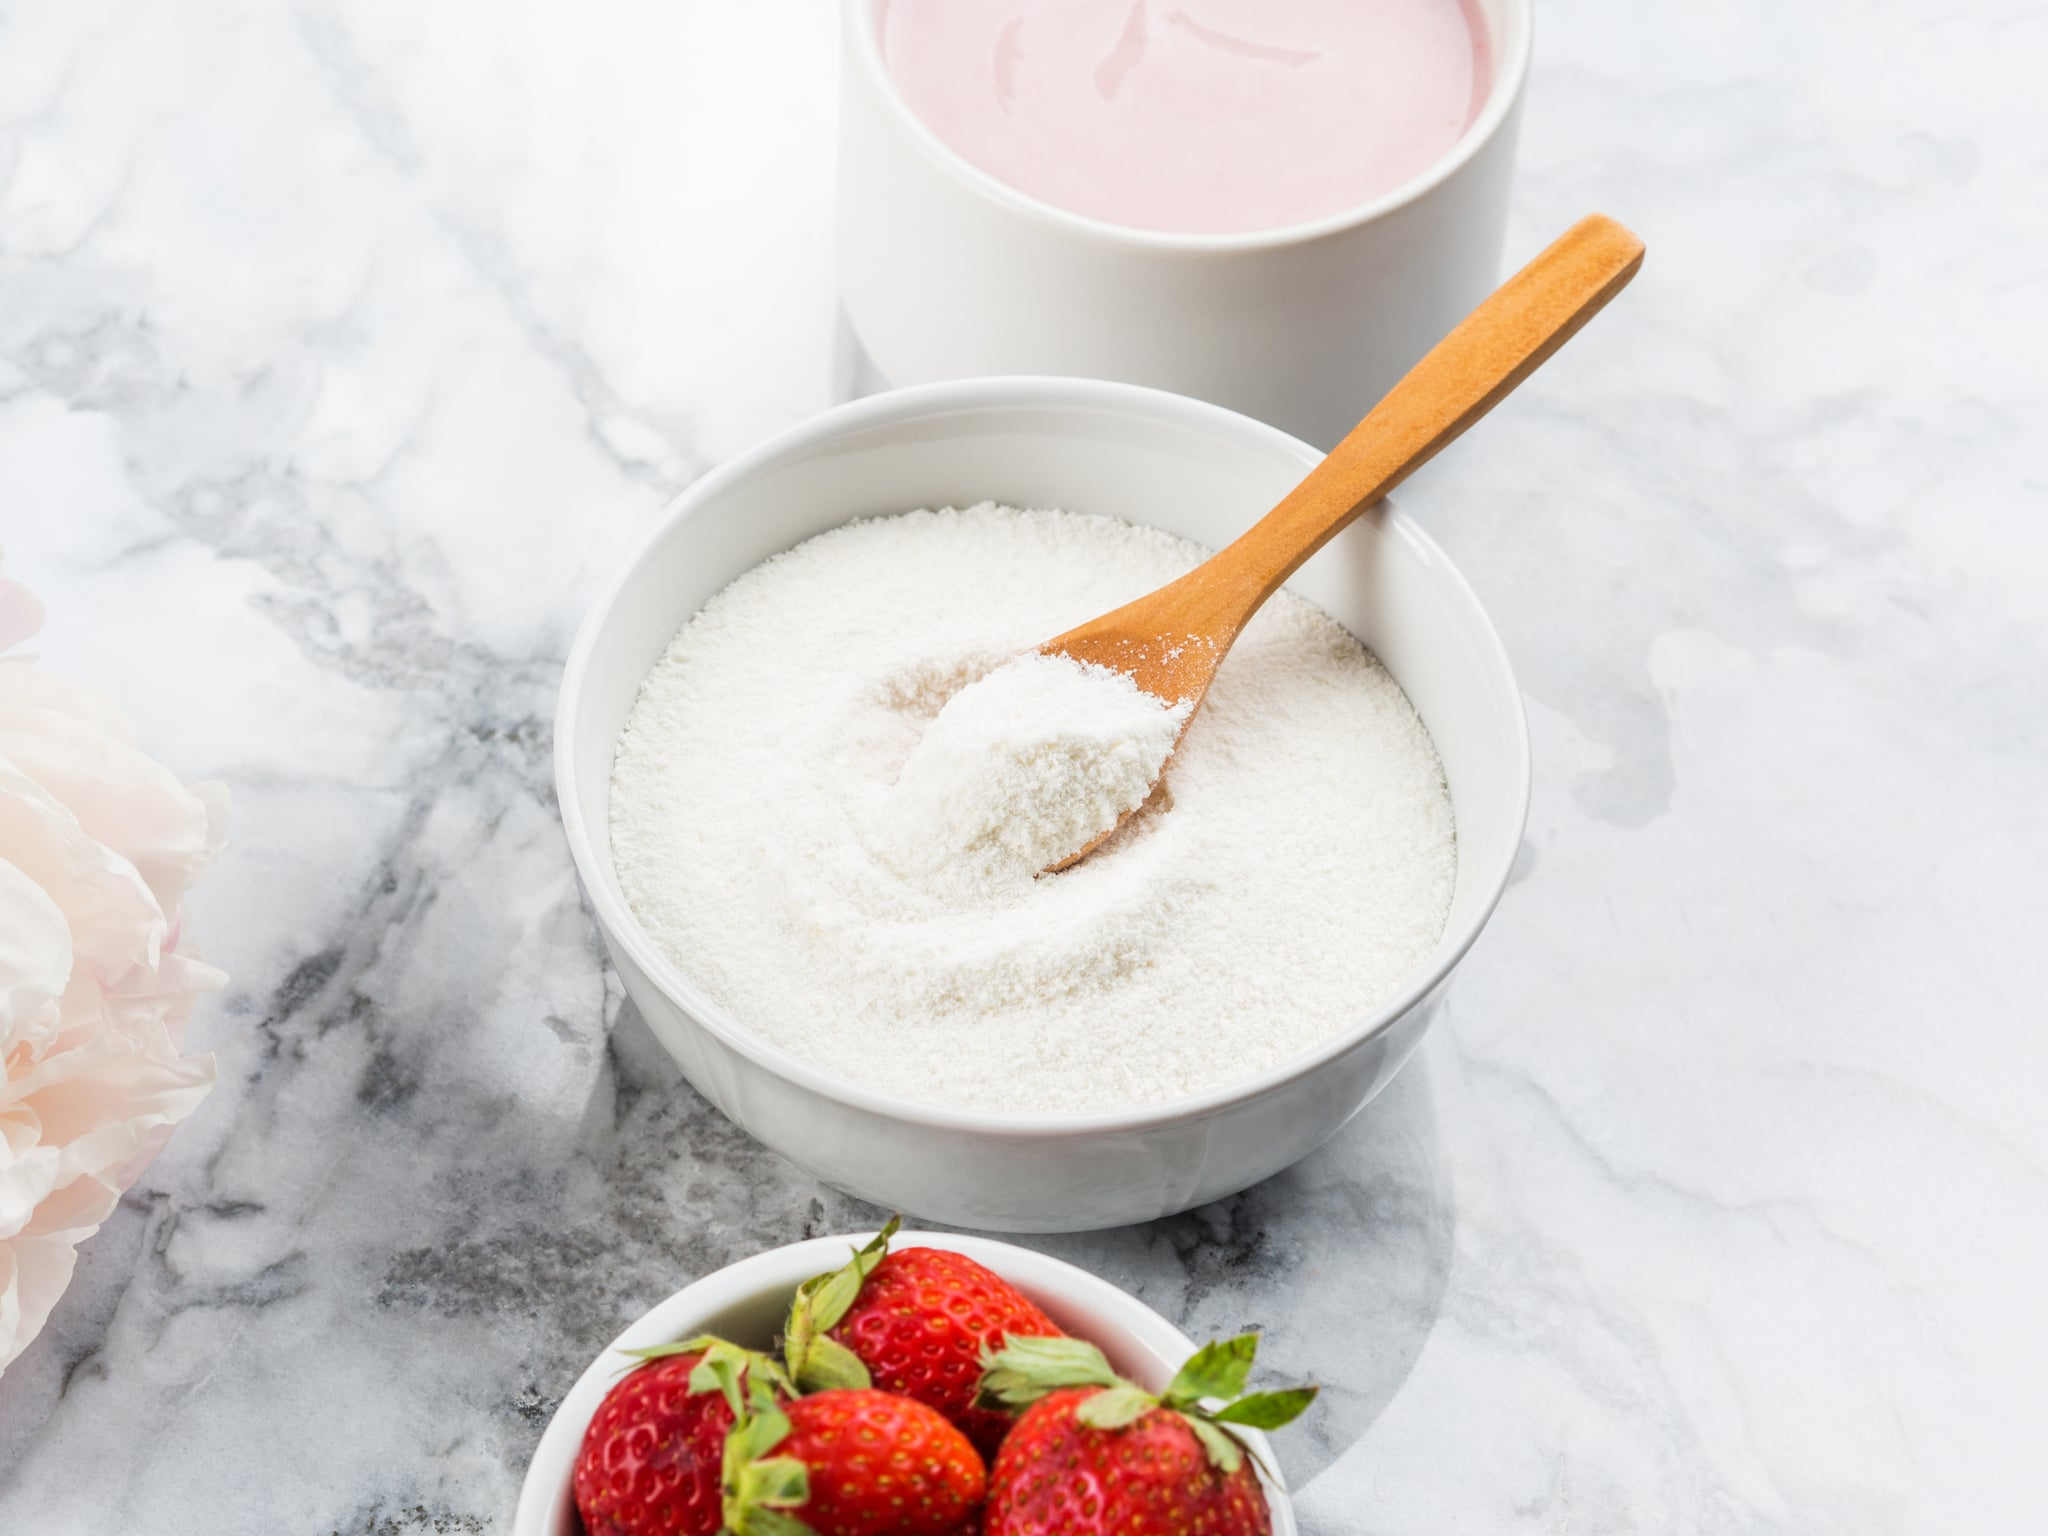 Collagen protein powder in bowl with wooden spoon on marble table. Adding collagen supplement to strawberry yogurt. Angle view